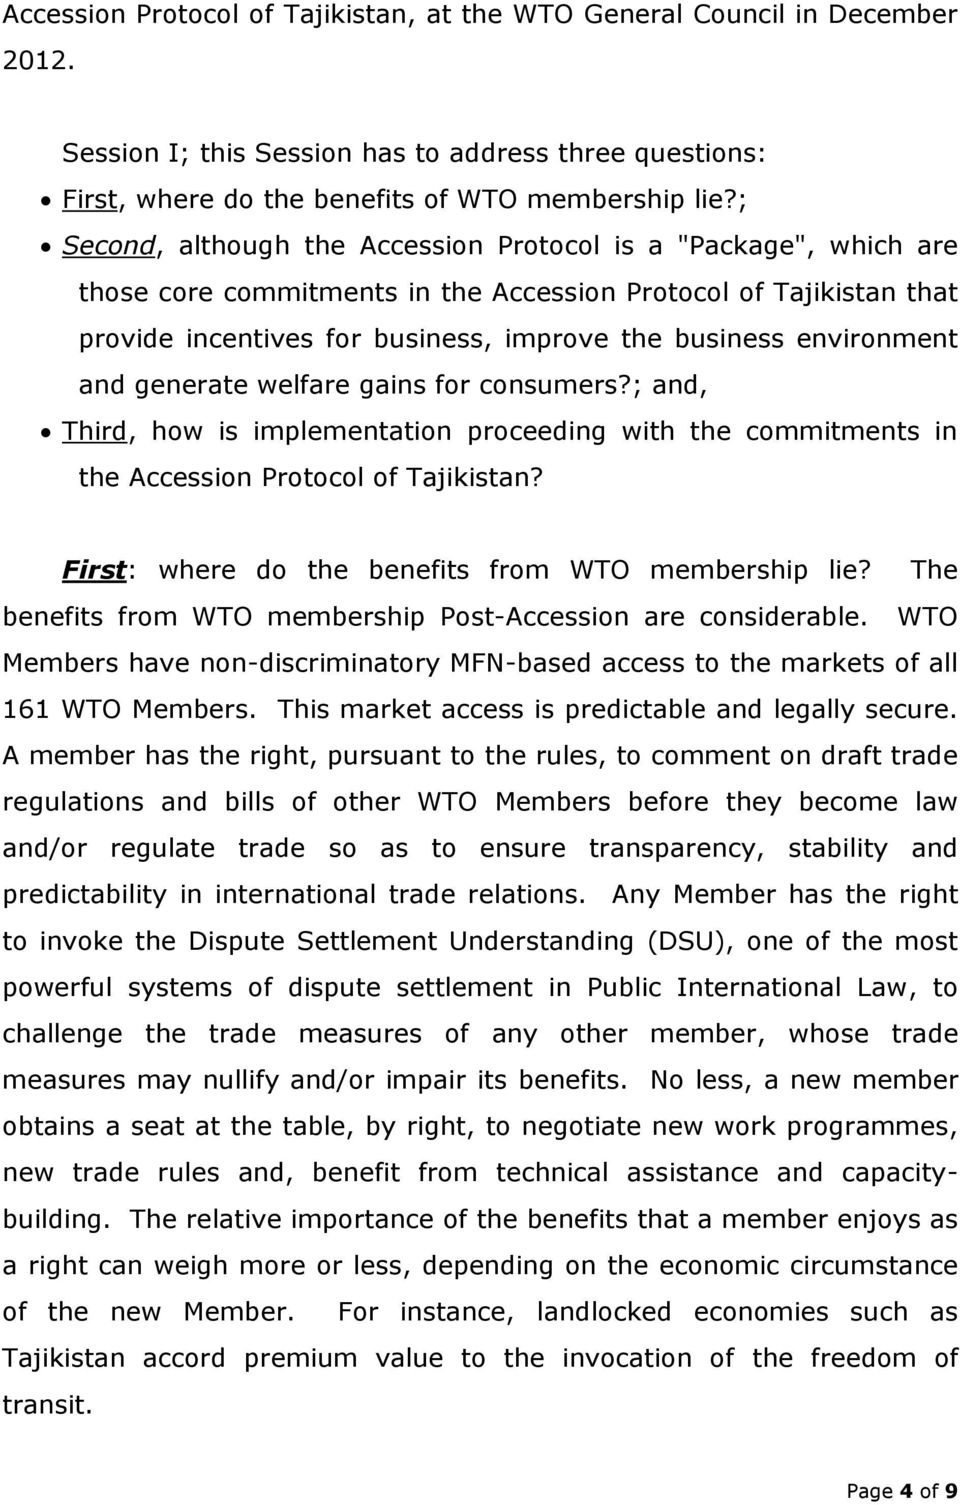 environment and generate welfare gains for consumers?; and, Third, how is implementation proceeding with the commitments in the Accession Protocol of Tajikistan?